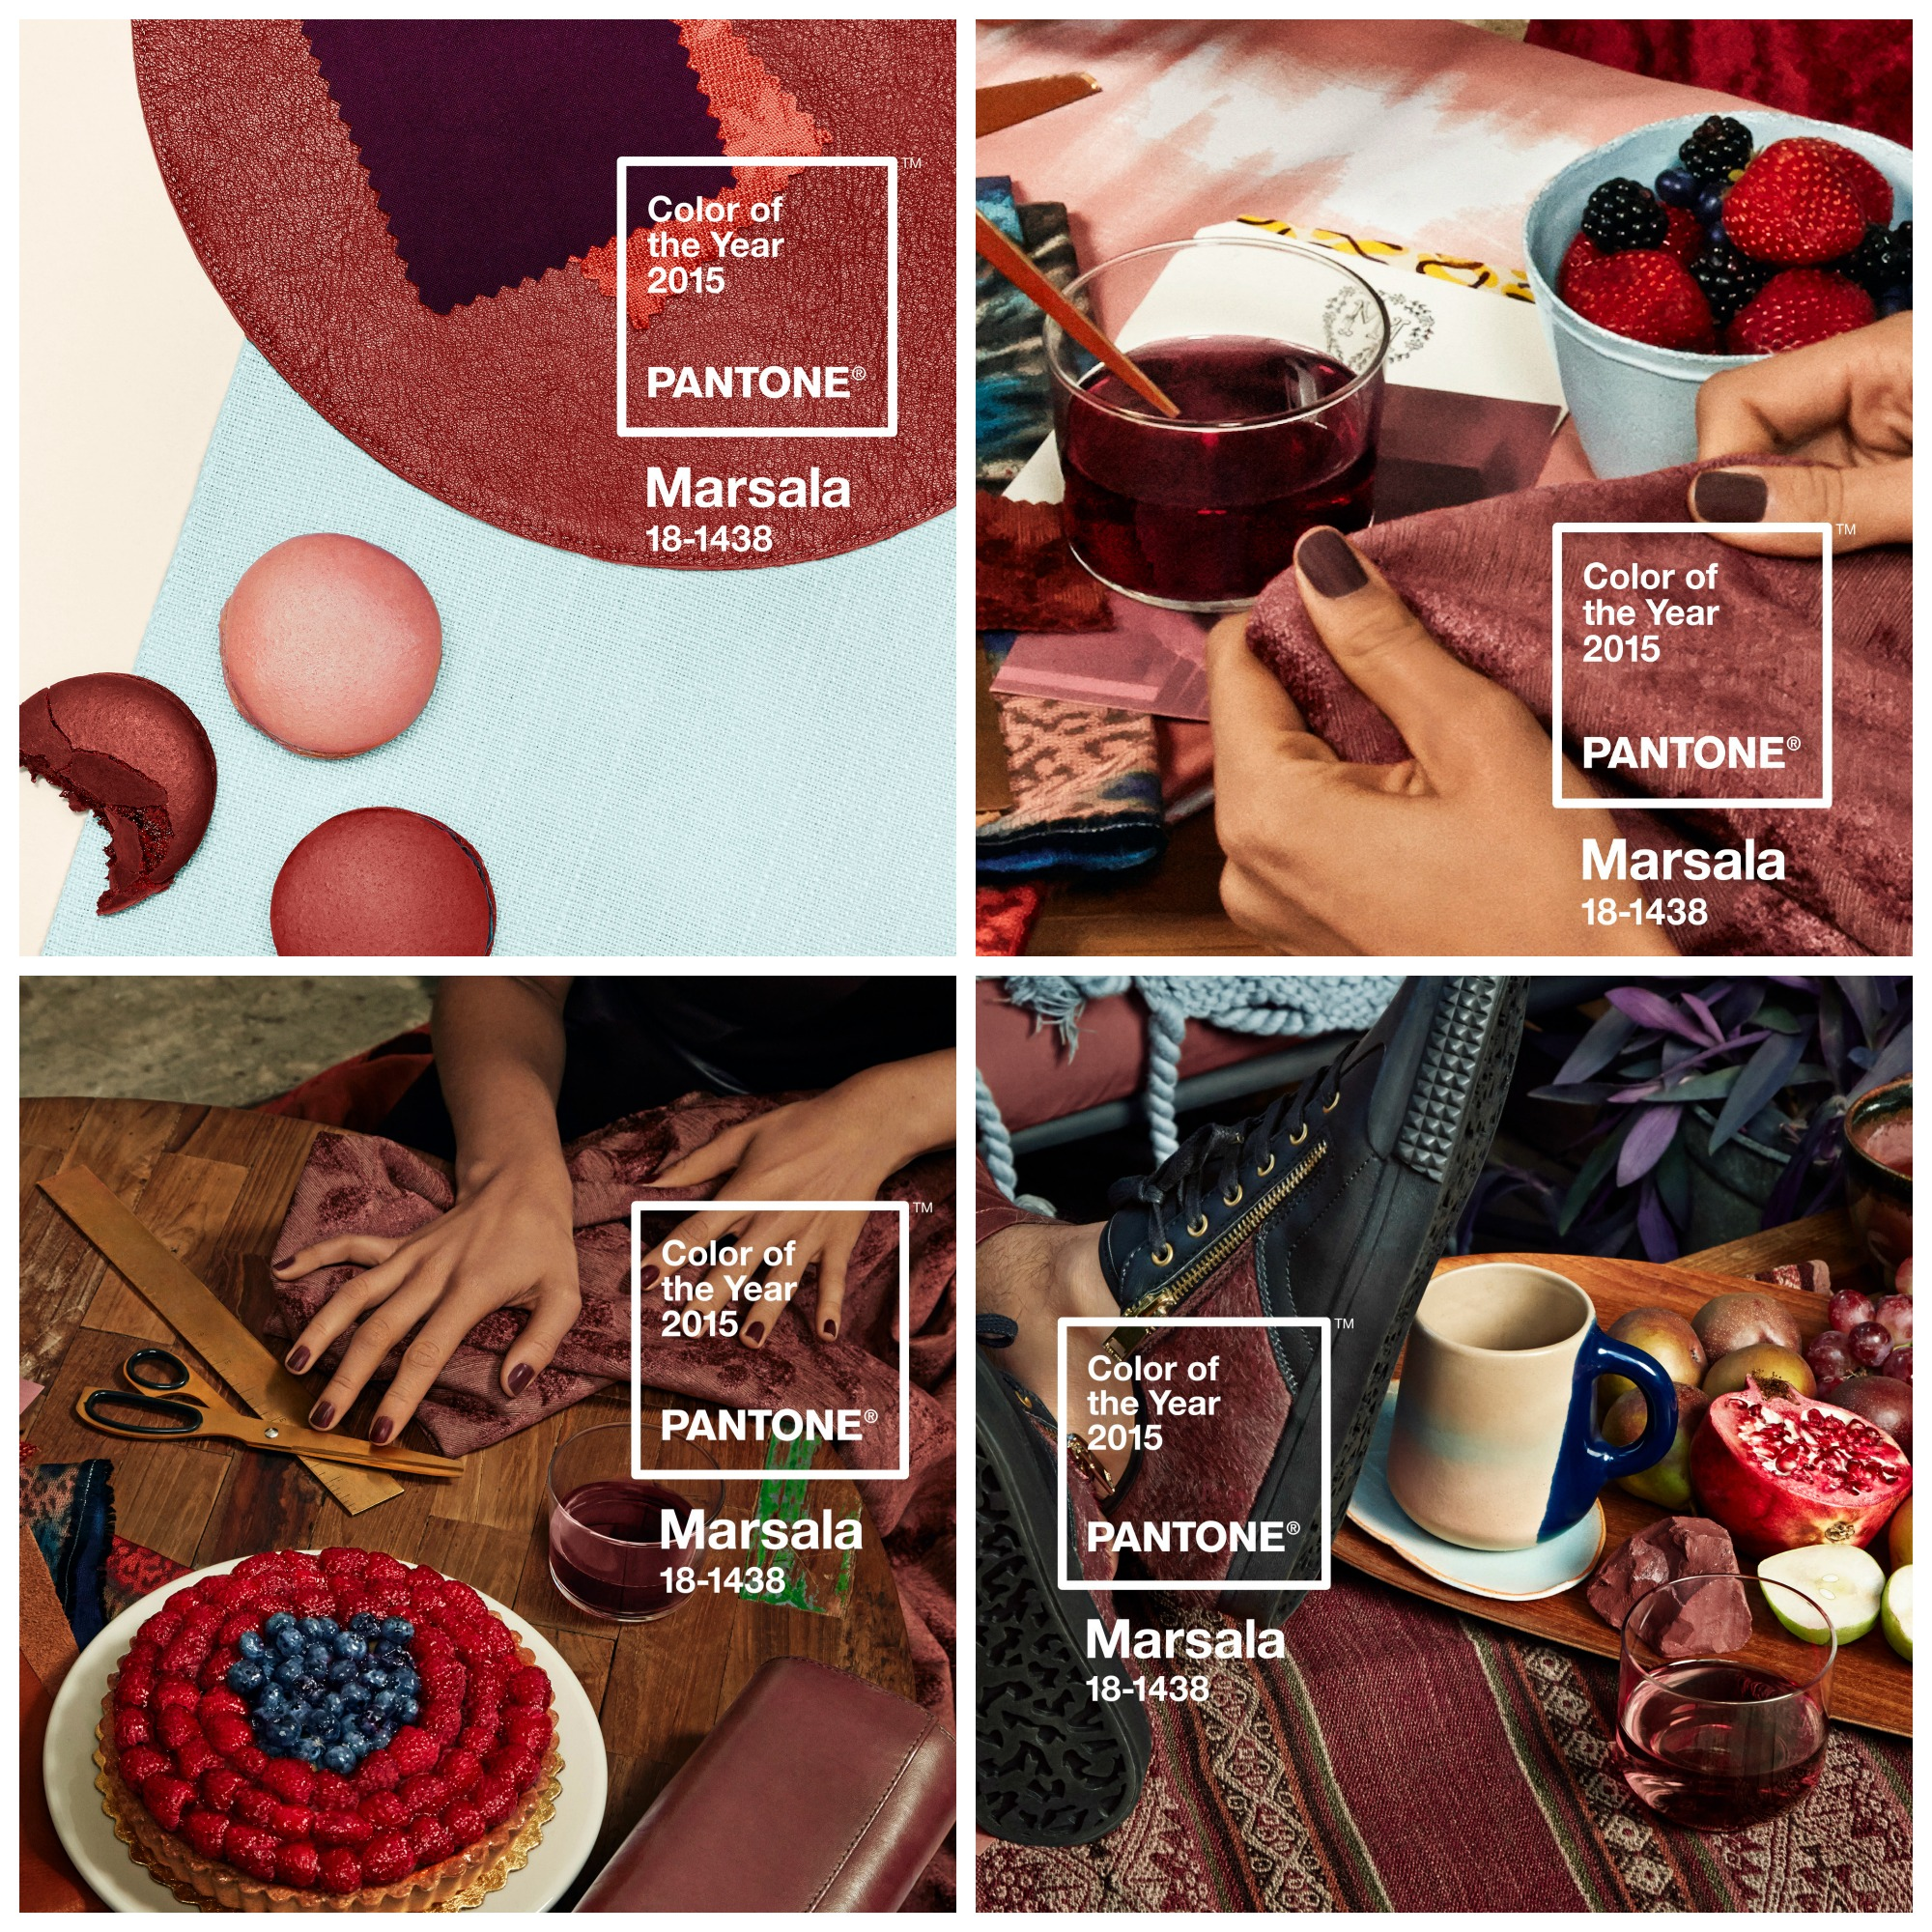 Pantone Marsala Color of the year 2015. Image: Courtesy of Pantone